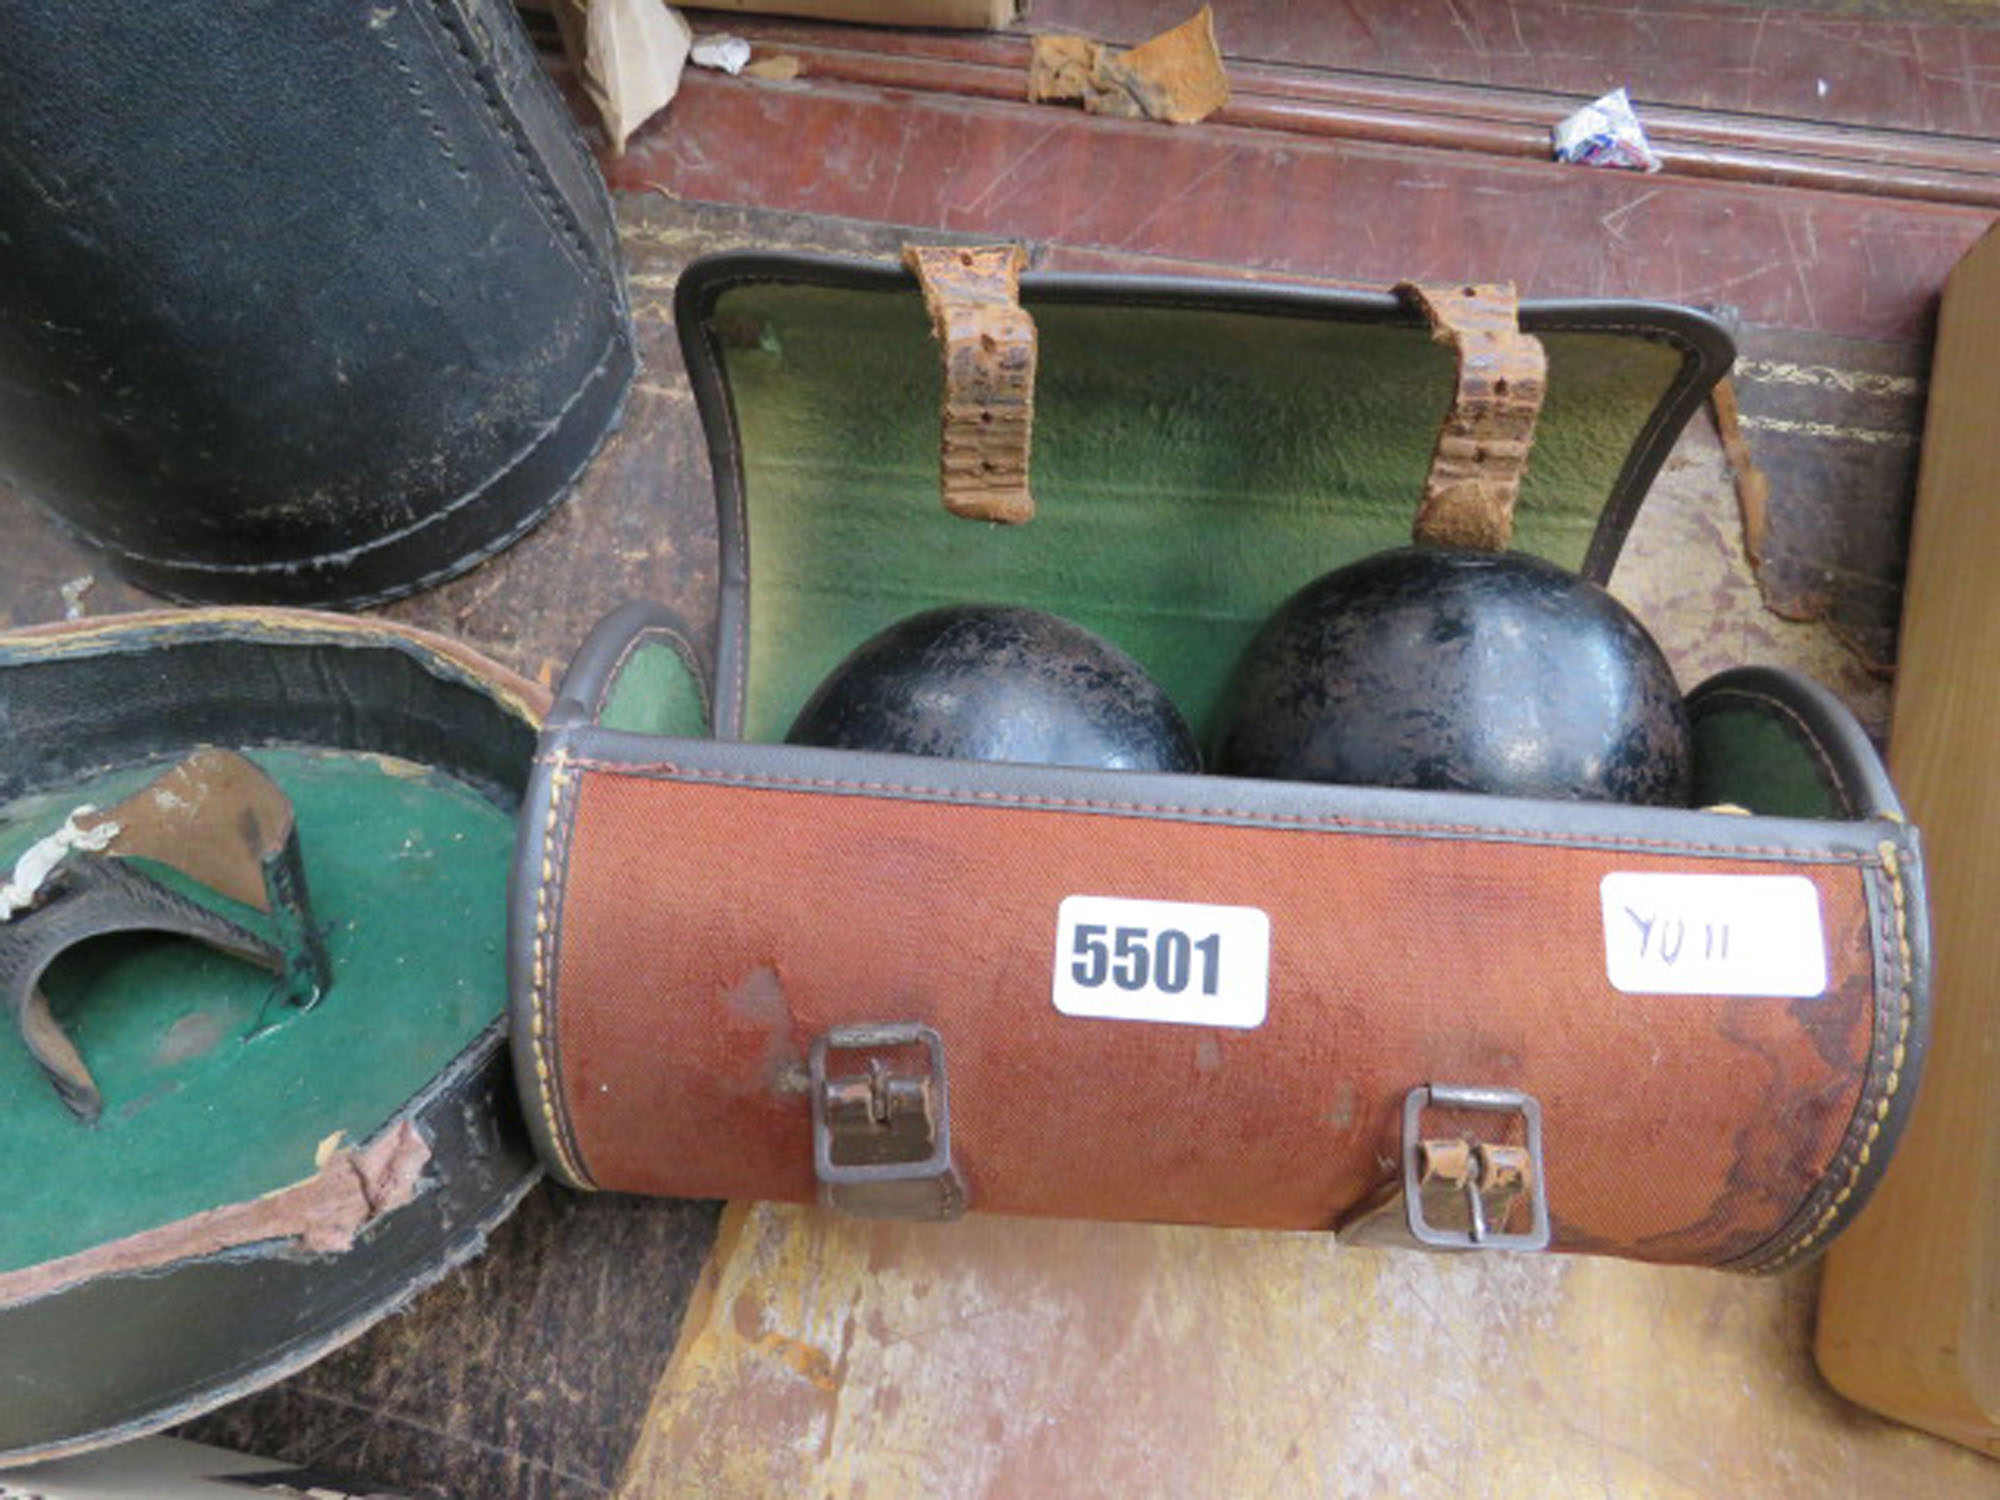 Case containing 2 lawn bowls